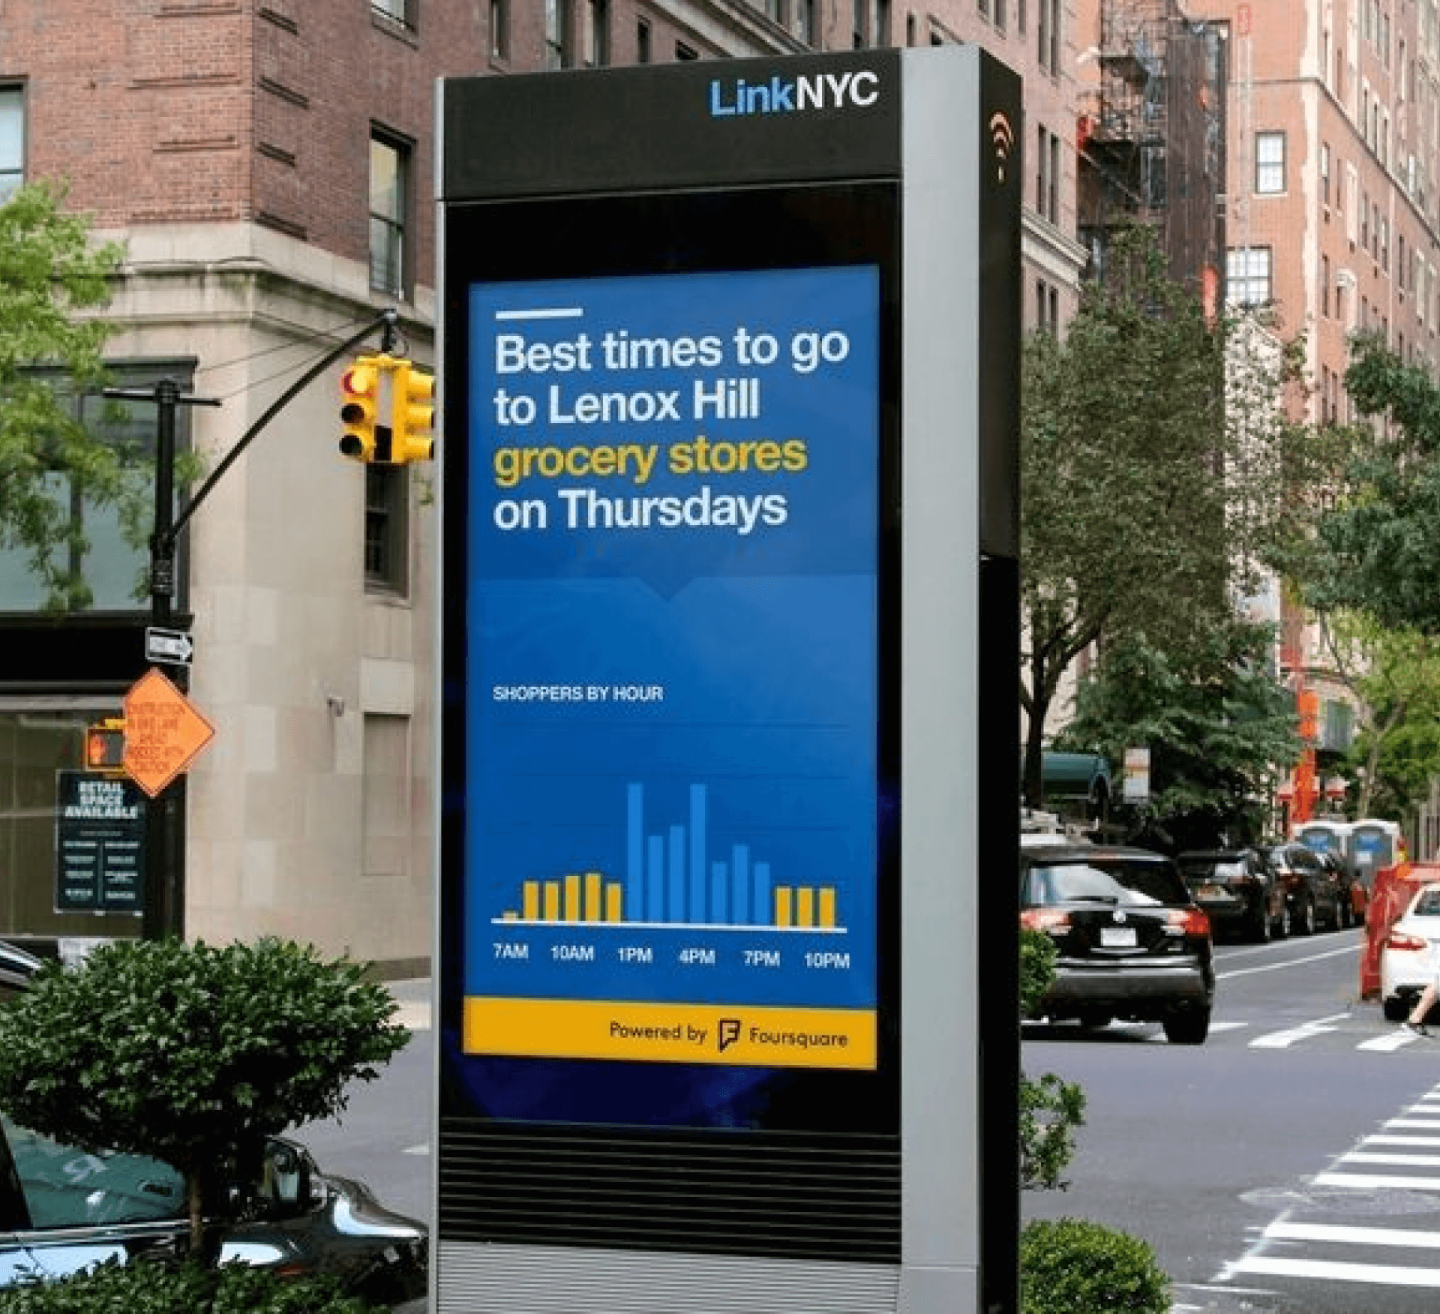 LinkNYC monitor displaying the best times to go to Lenox Hill grocery stores on Thursdays with a graph of how busy grocery stores are throughout the day.